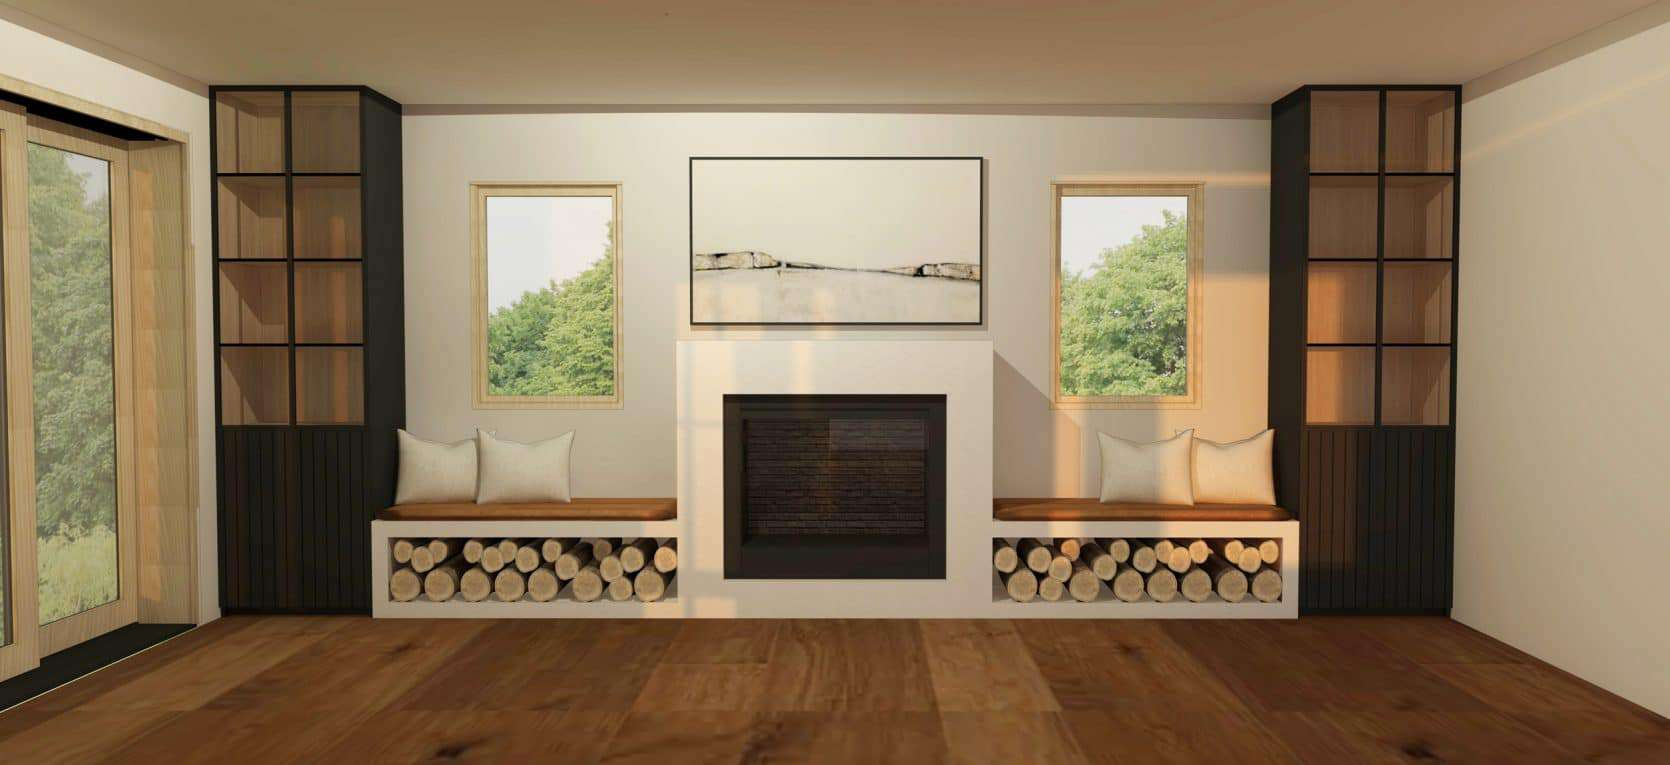 Emily Henderson Mountain Fixer Upper Family Room Fireplace Render 091